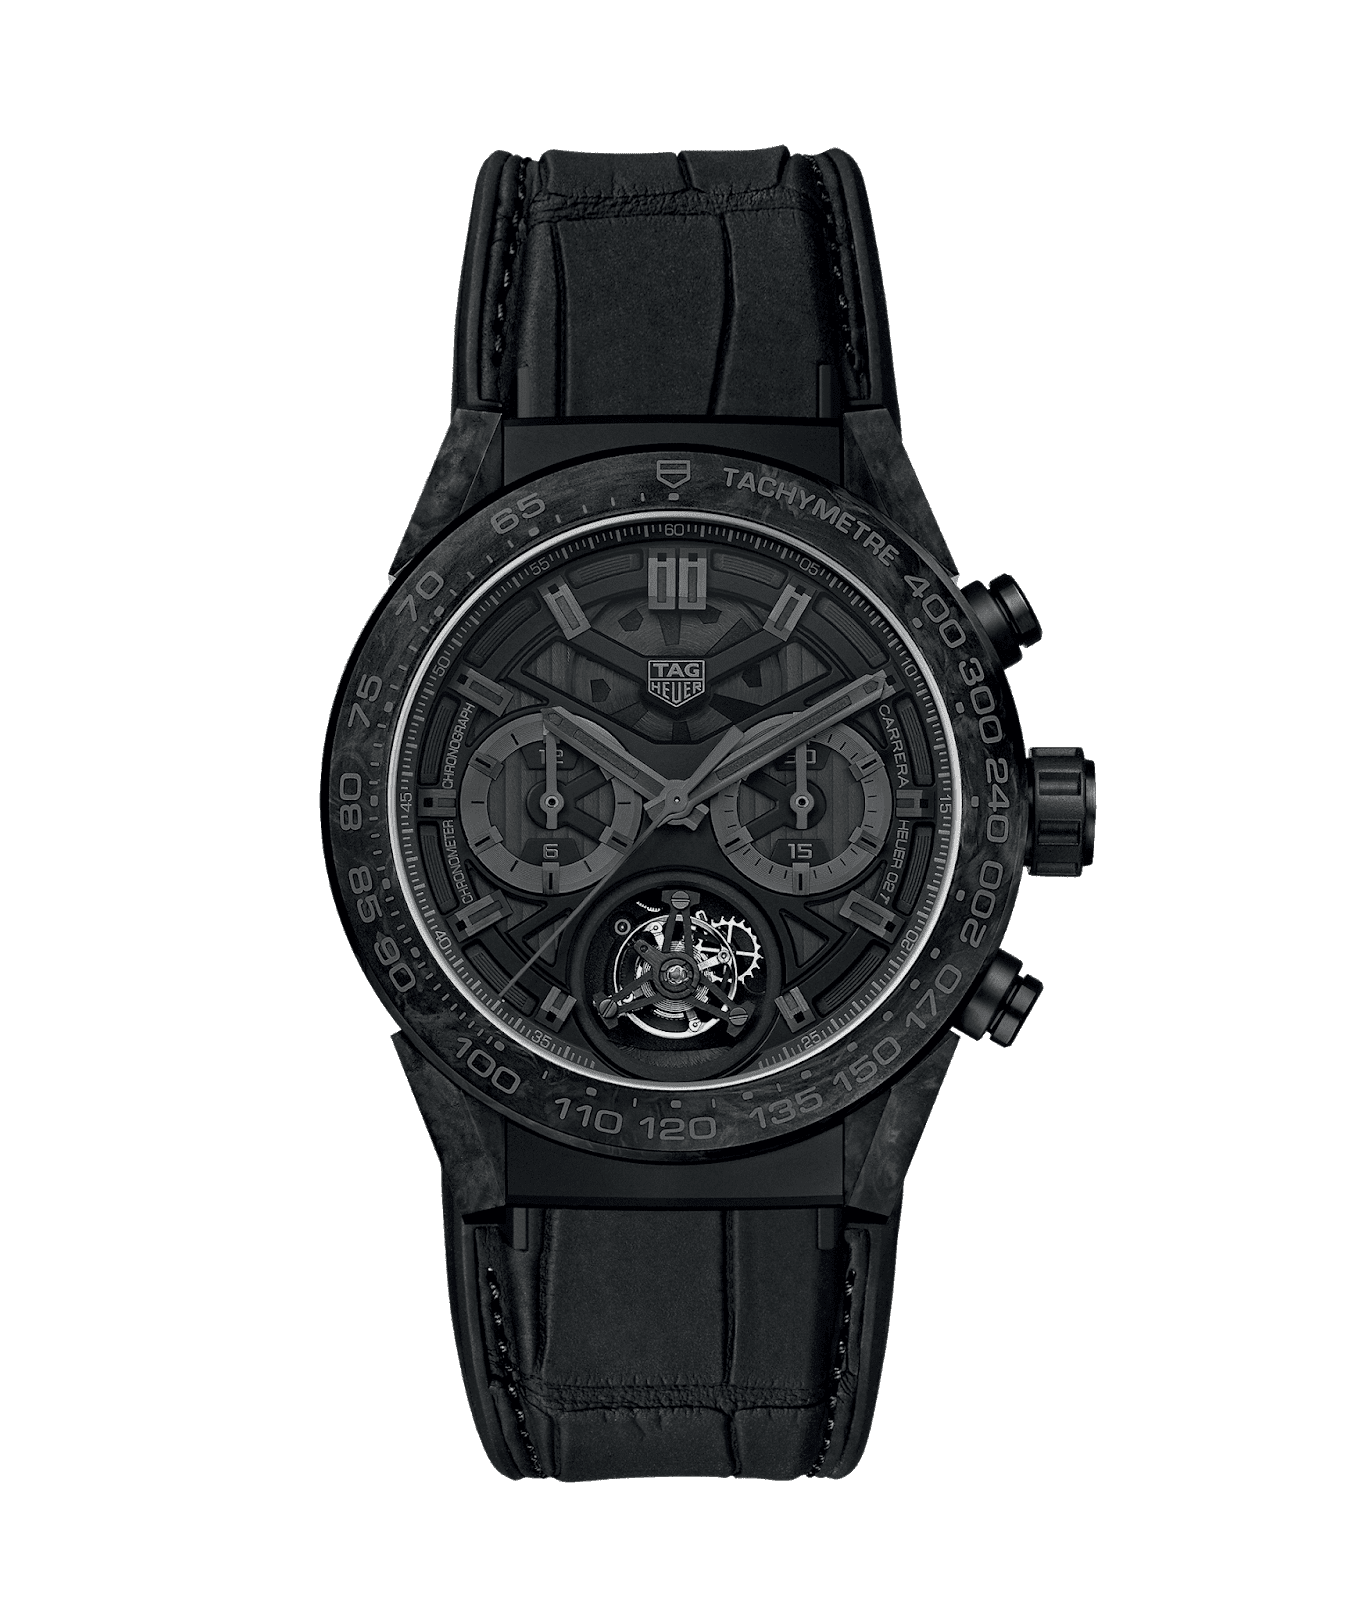 33aa709953a5 TAG HEUER ENTHUSIAST  FIRST IMPRESSIONS  New Carbon Collection ...